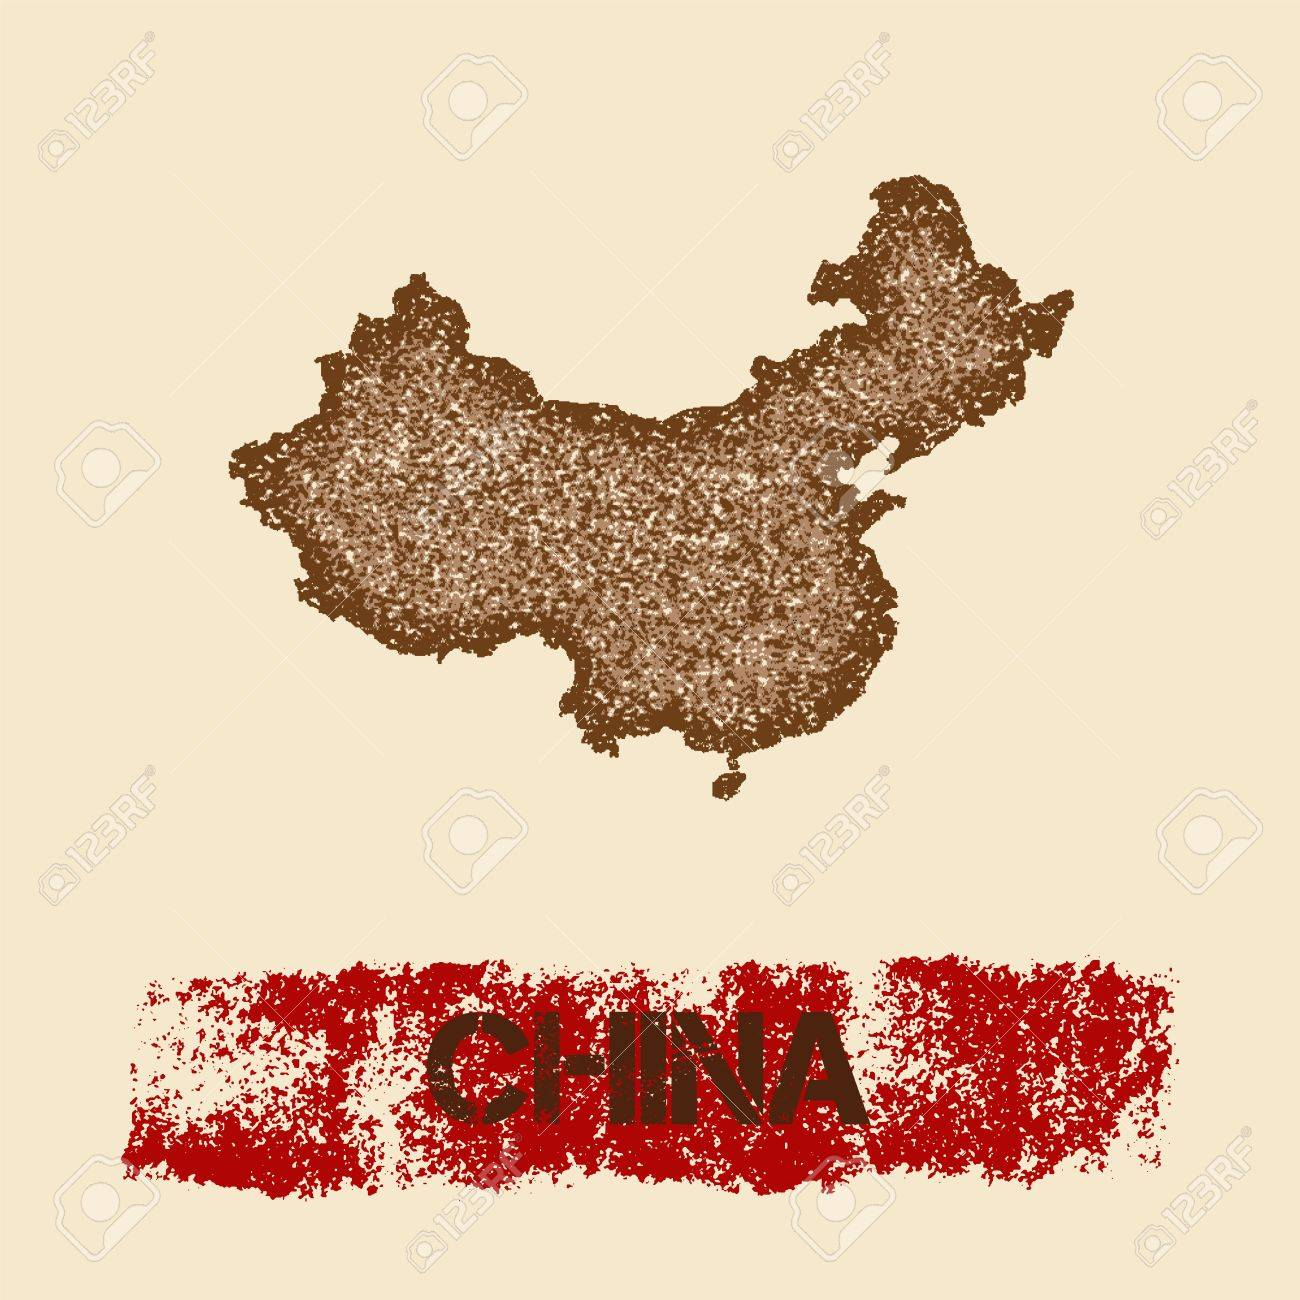 China Map Poster.China Distressed Map Grunge Patriotic Poster With Textured Country